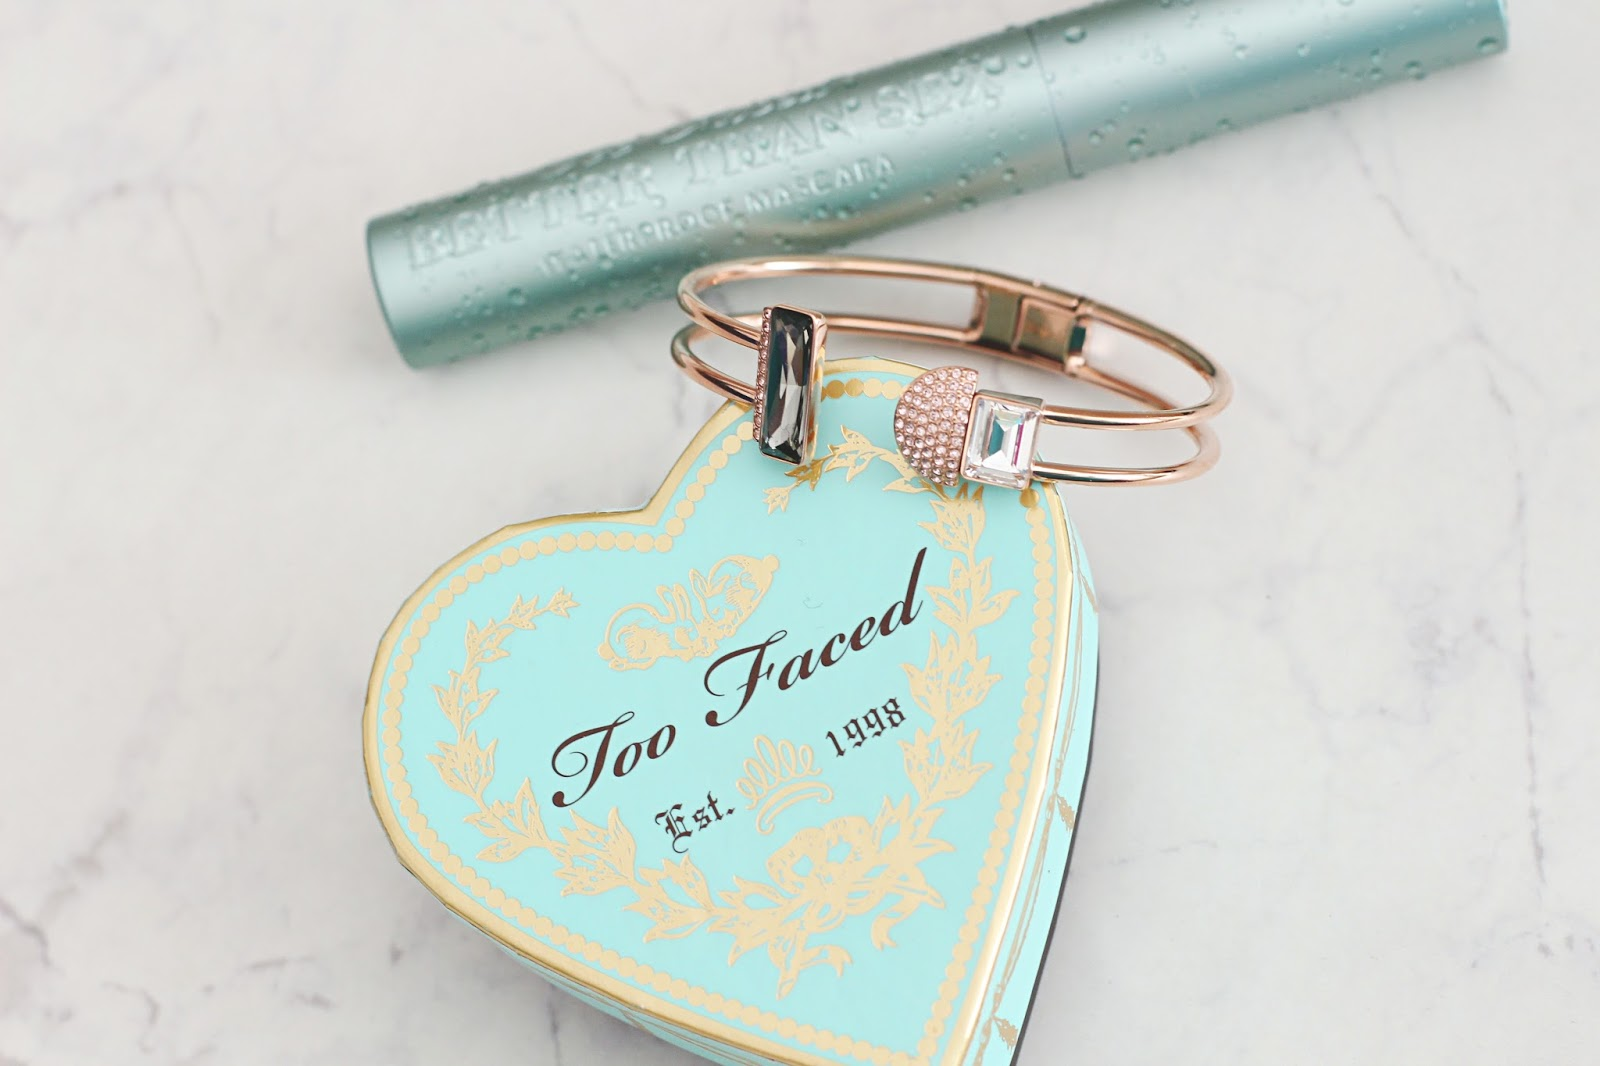 swarovski too faced